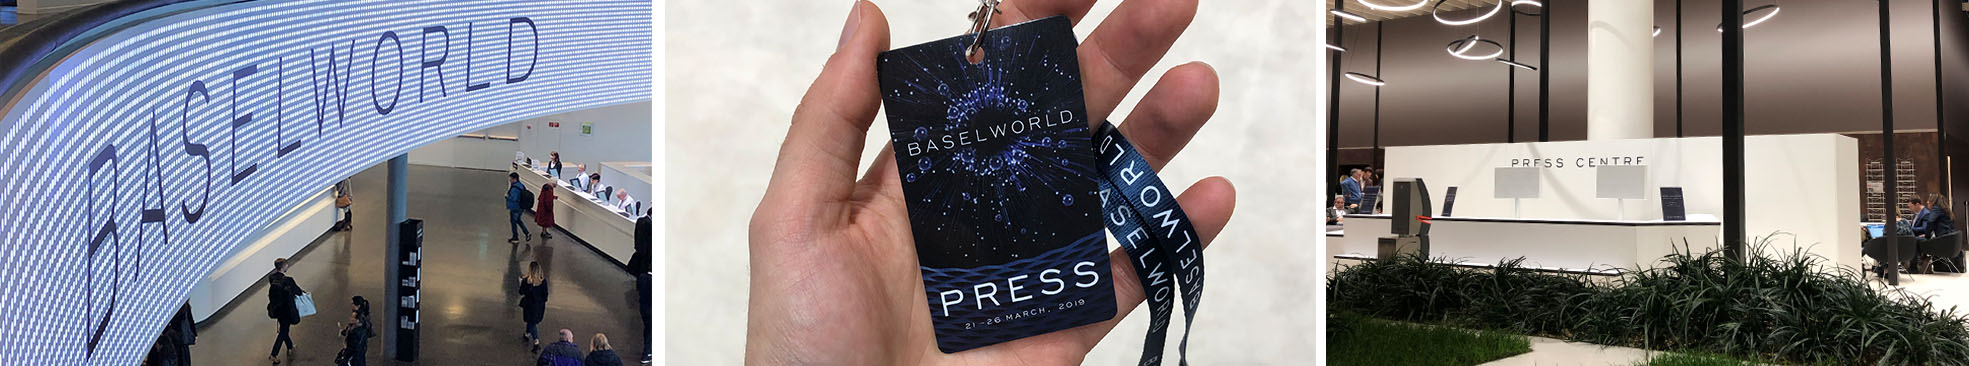 Arrival at Baselworld 2019 Press area